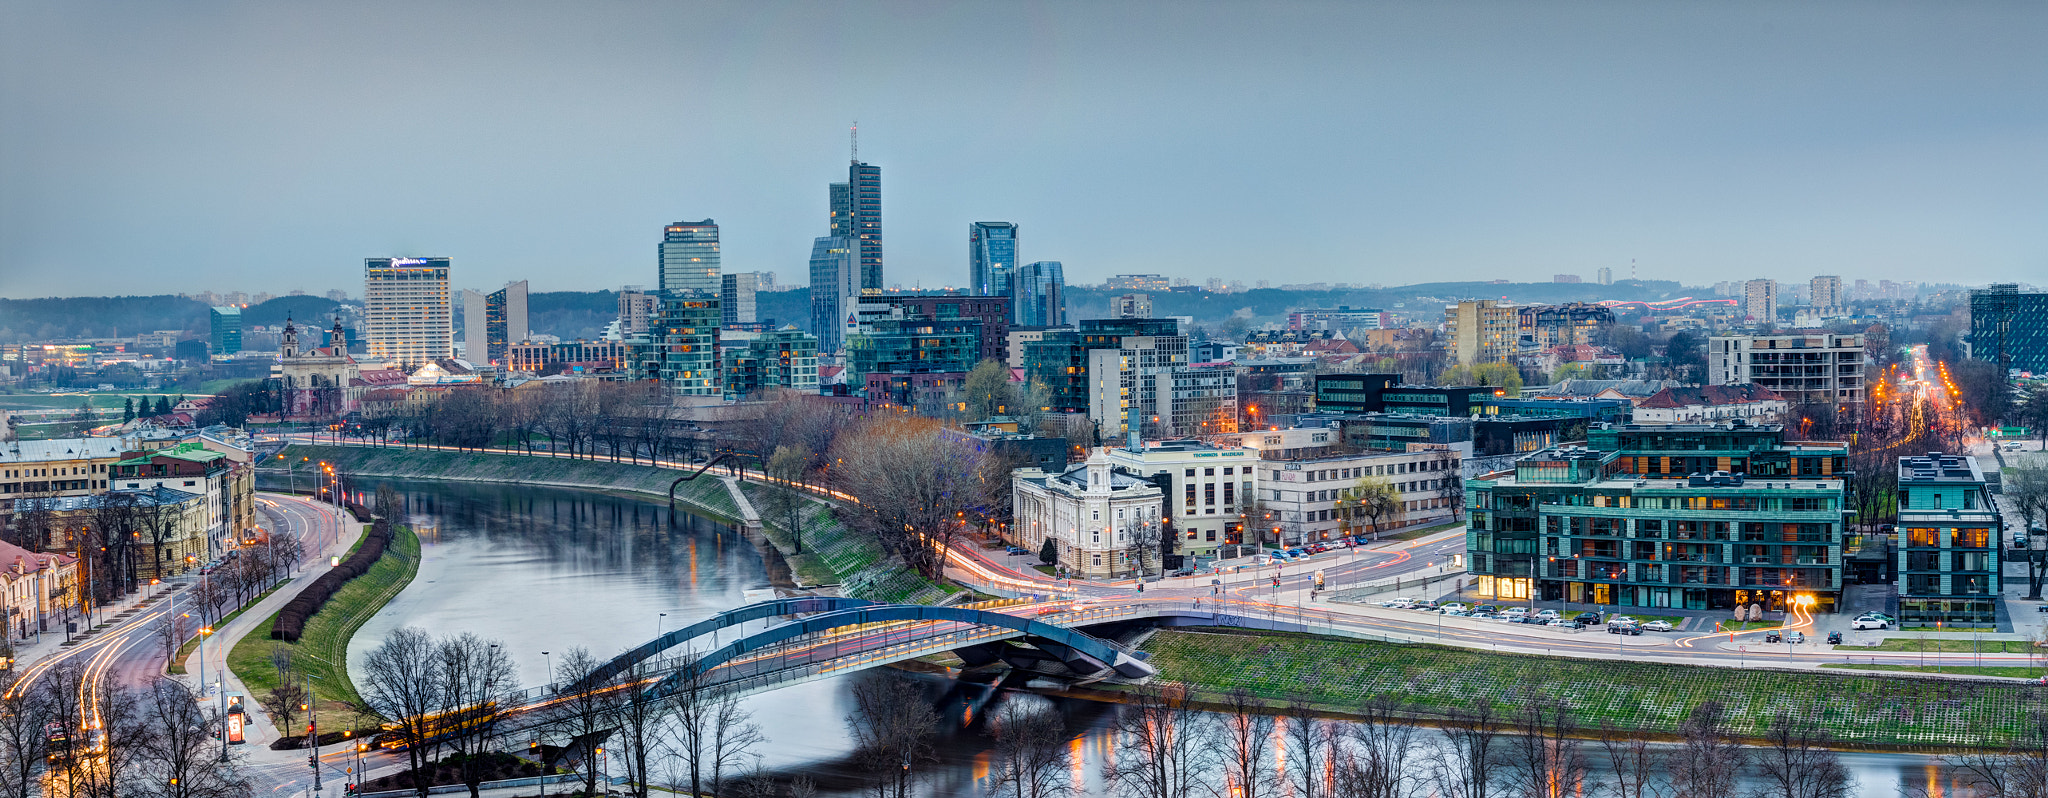 Photograph Silver Vilnius by Norbert Durko on 500px